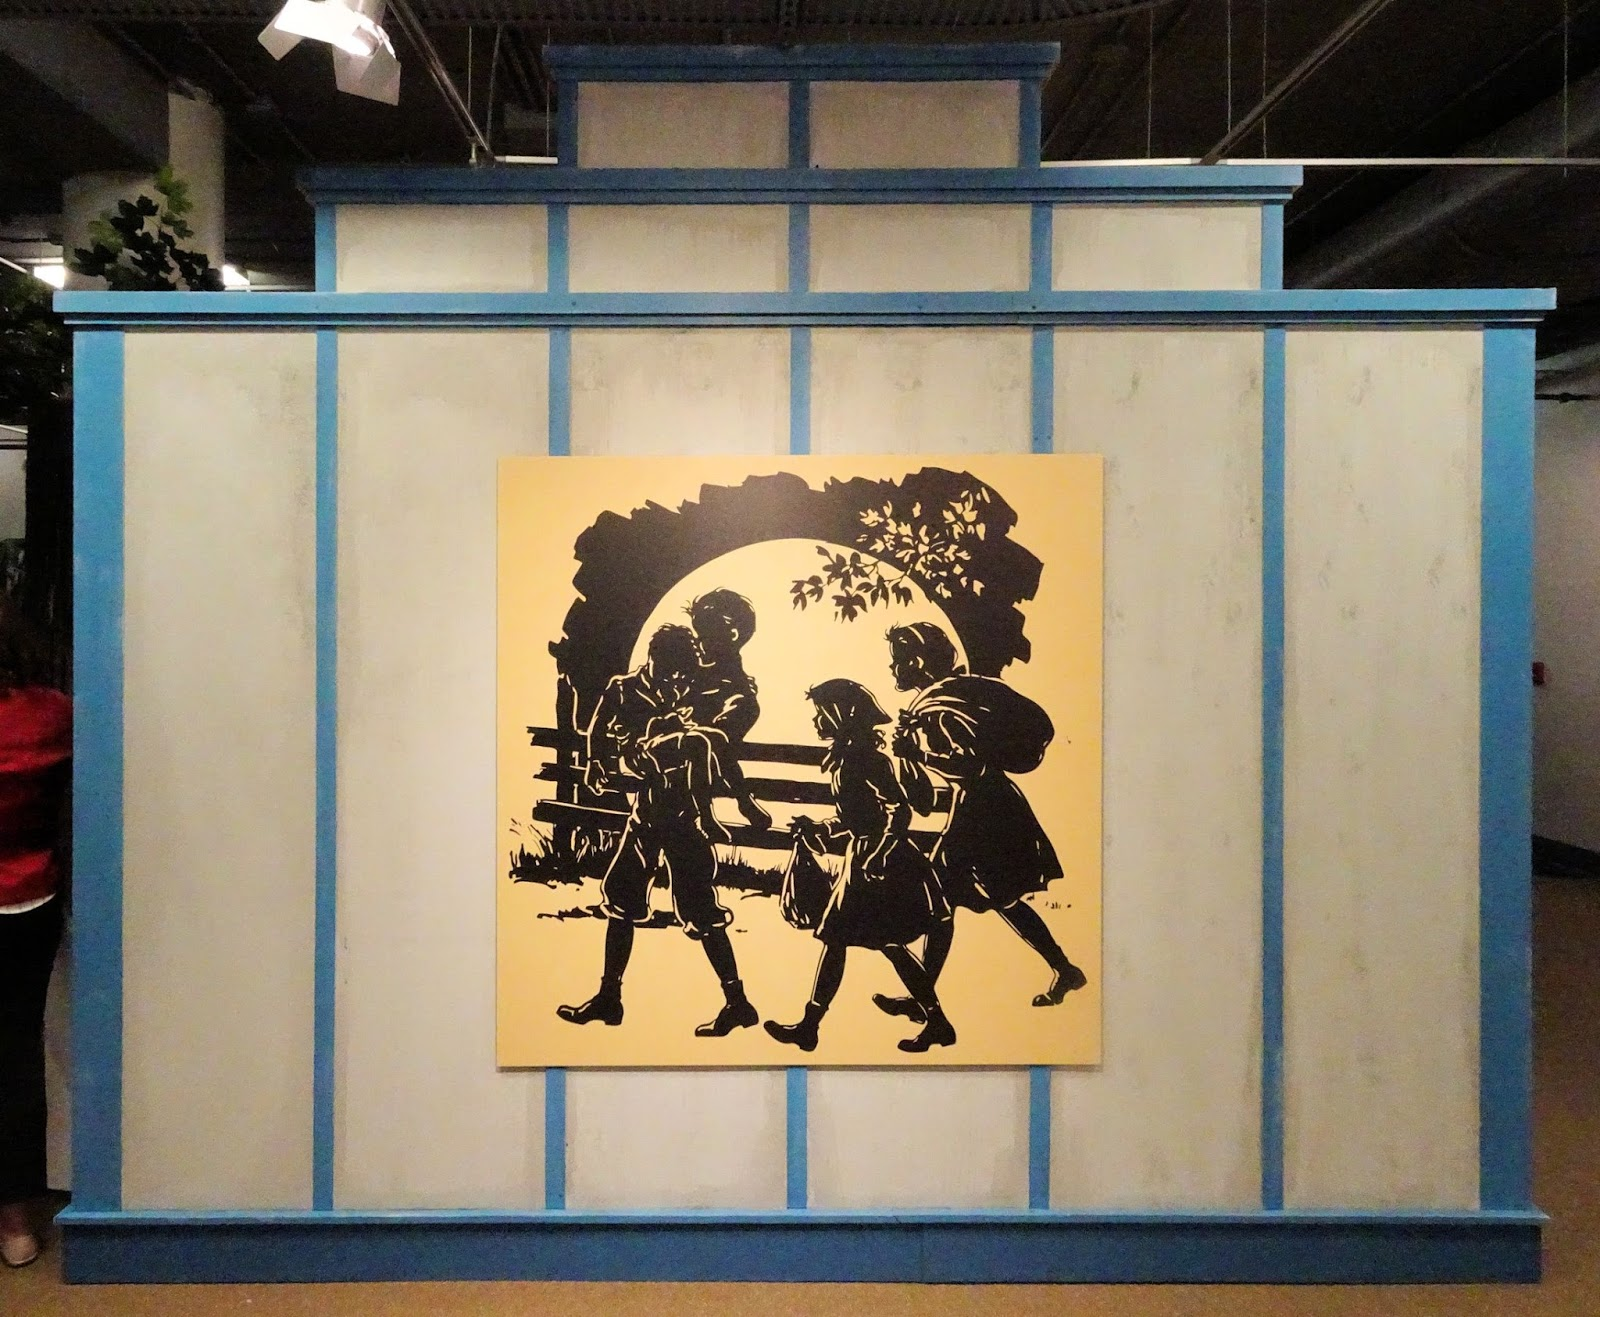 Femme au foyer: The Boxcar Children opens at TCMU!